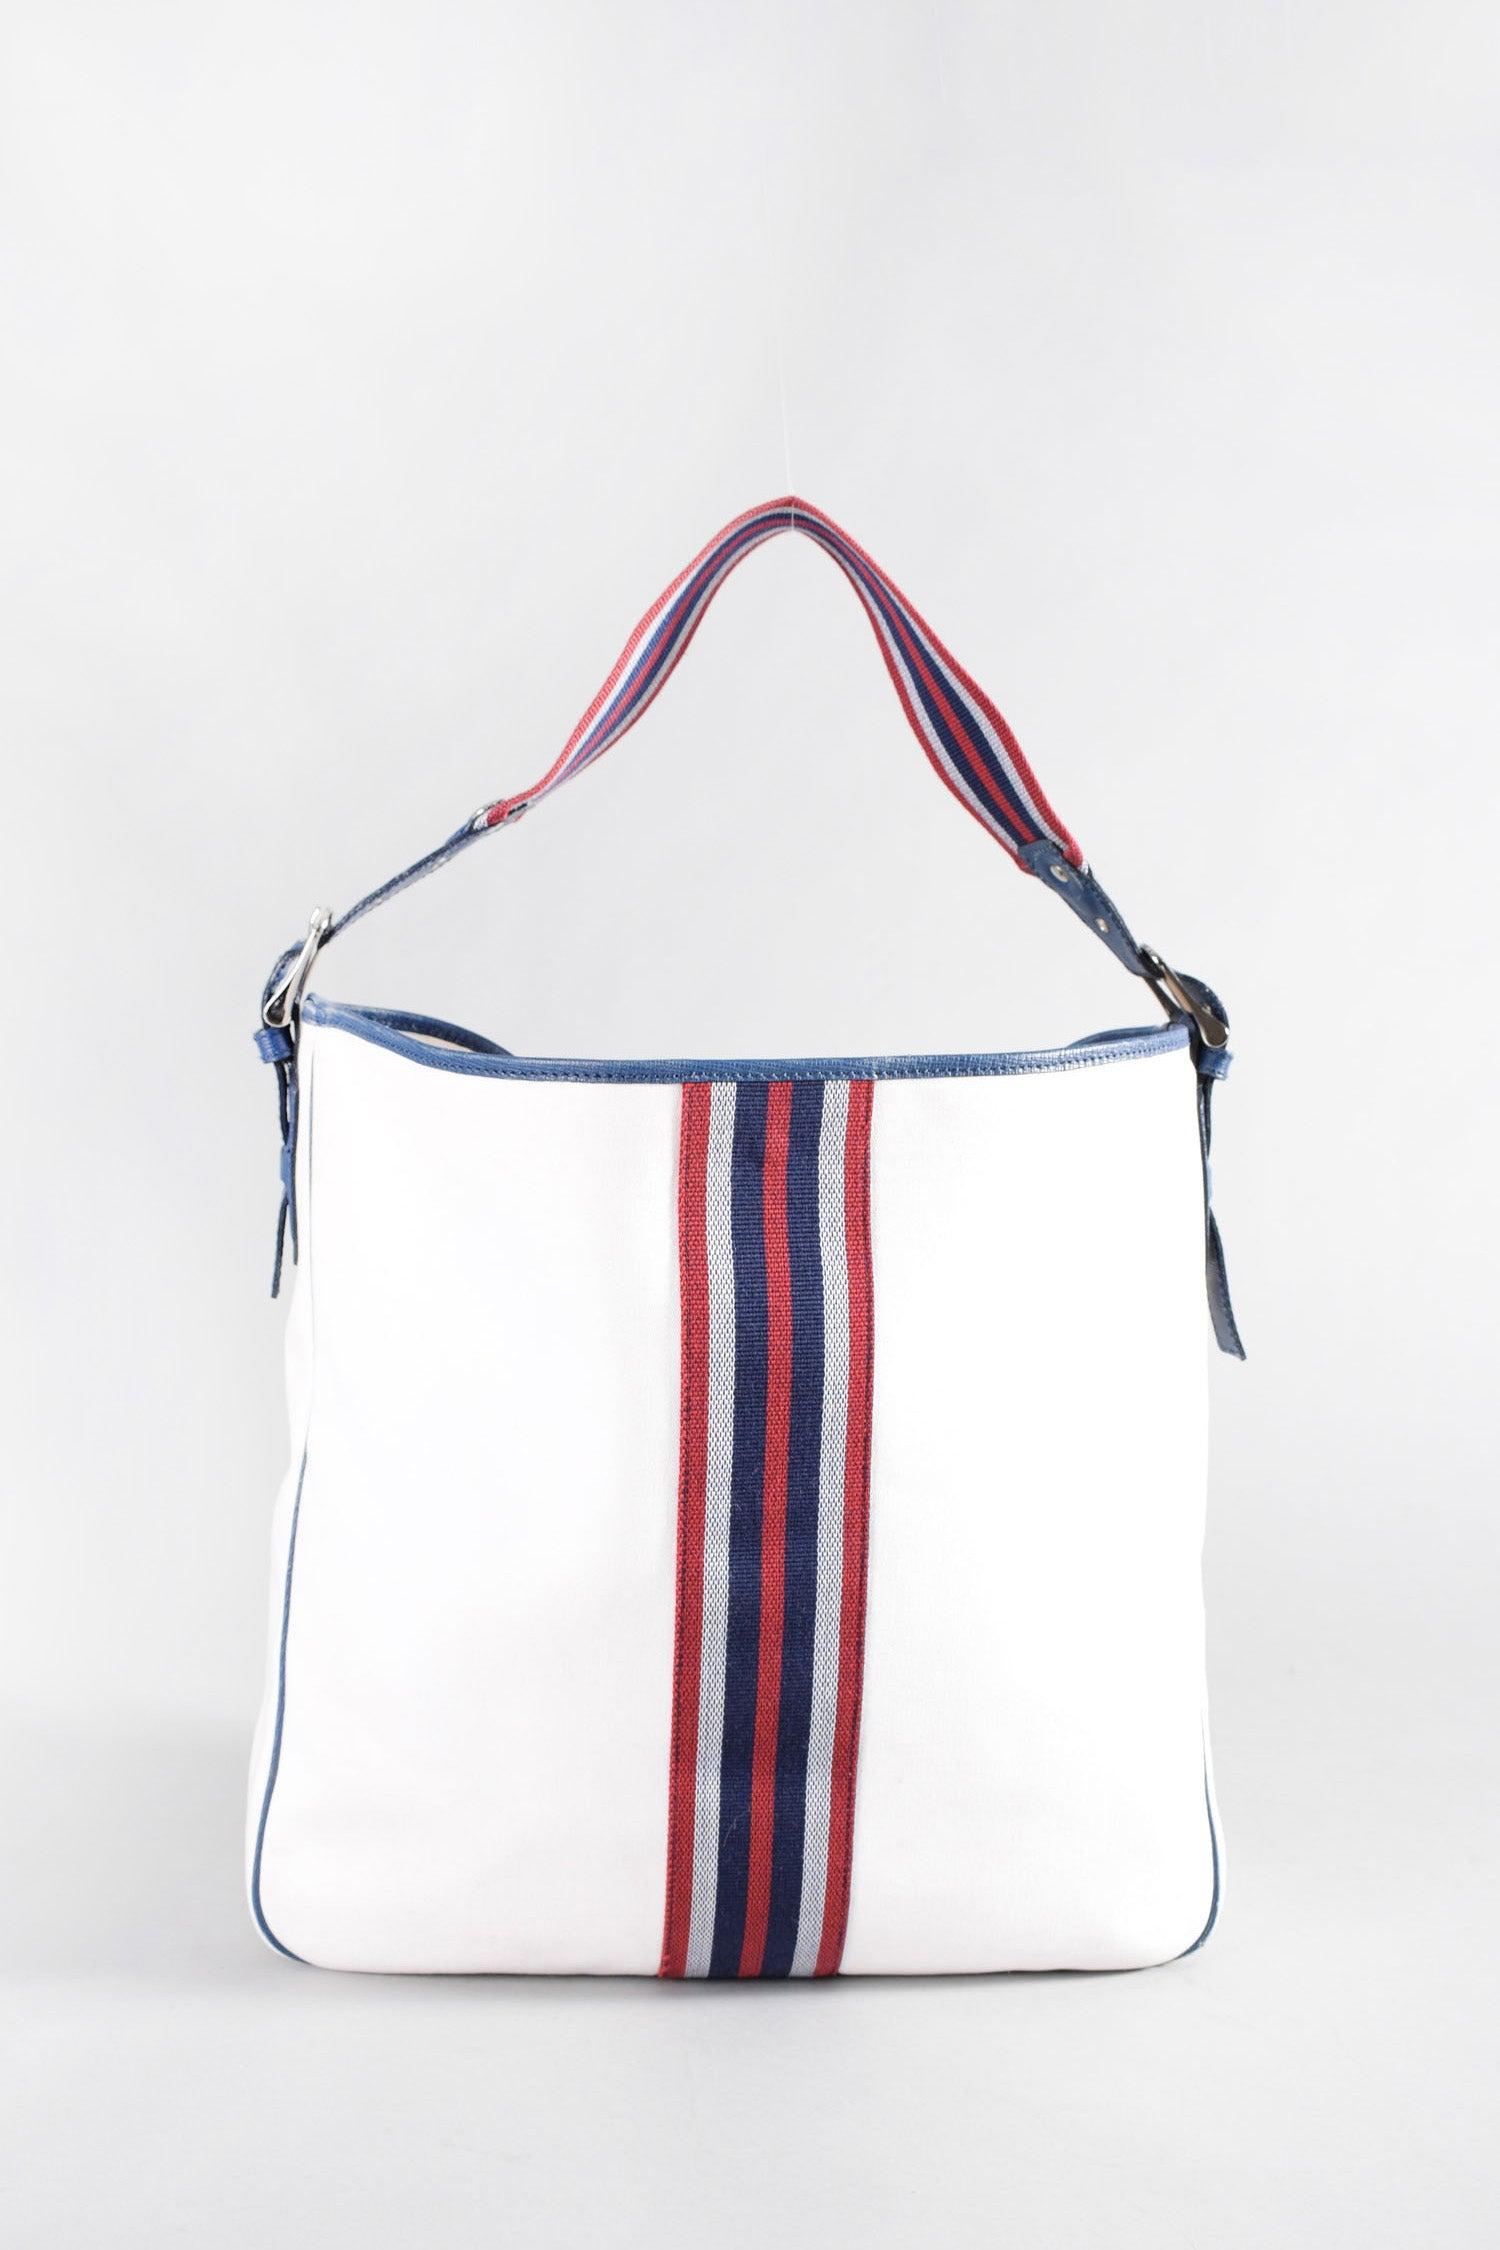 Burberry White Tote w/ Navy/Red Stripes